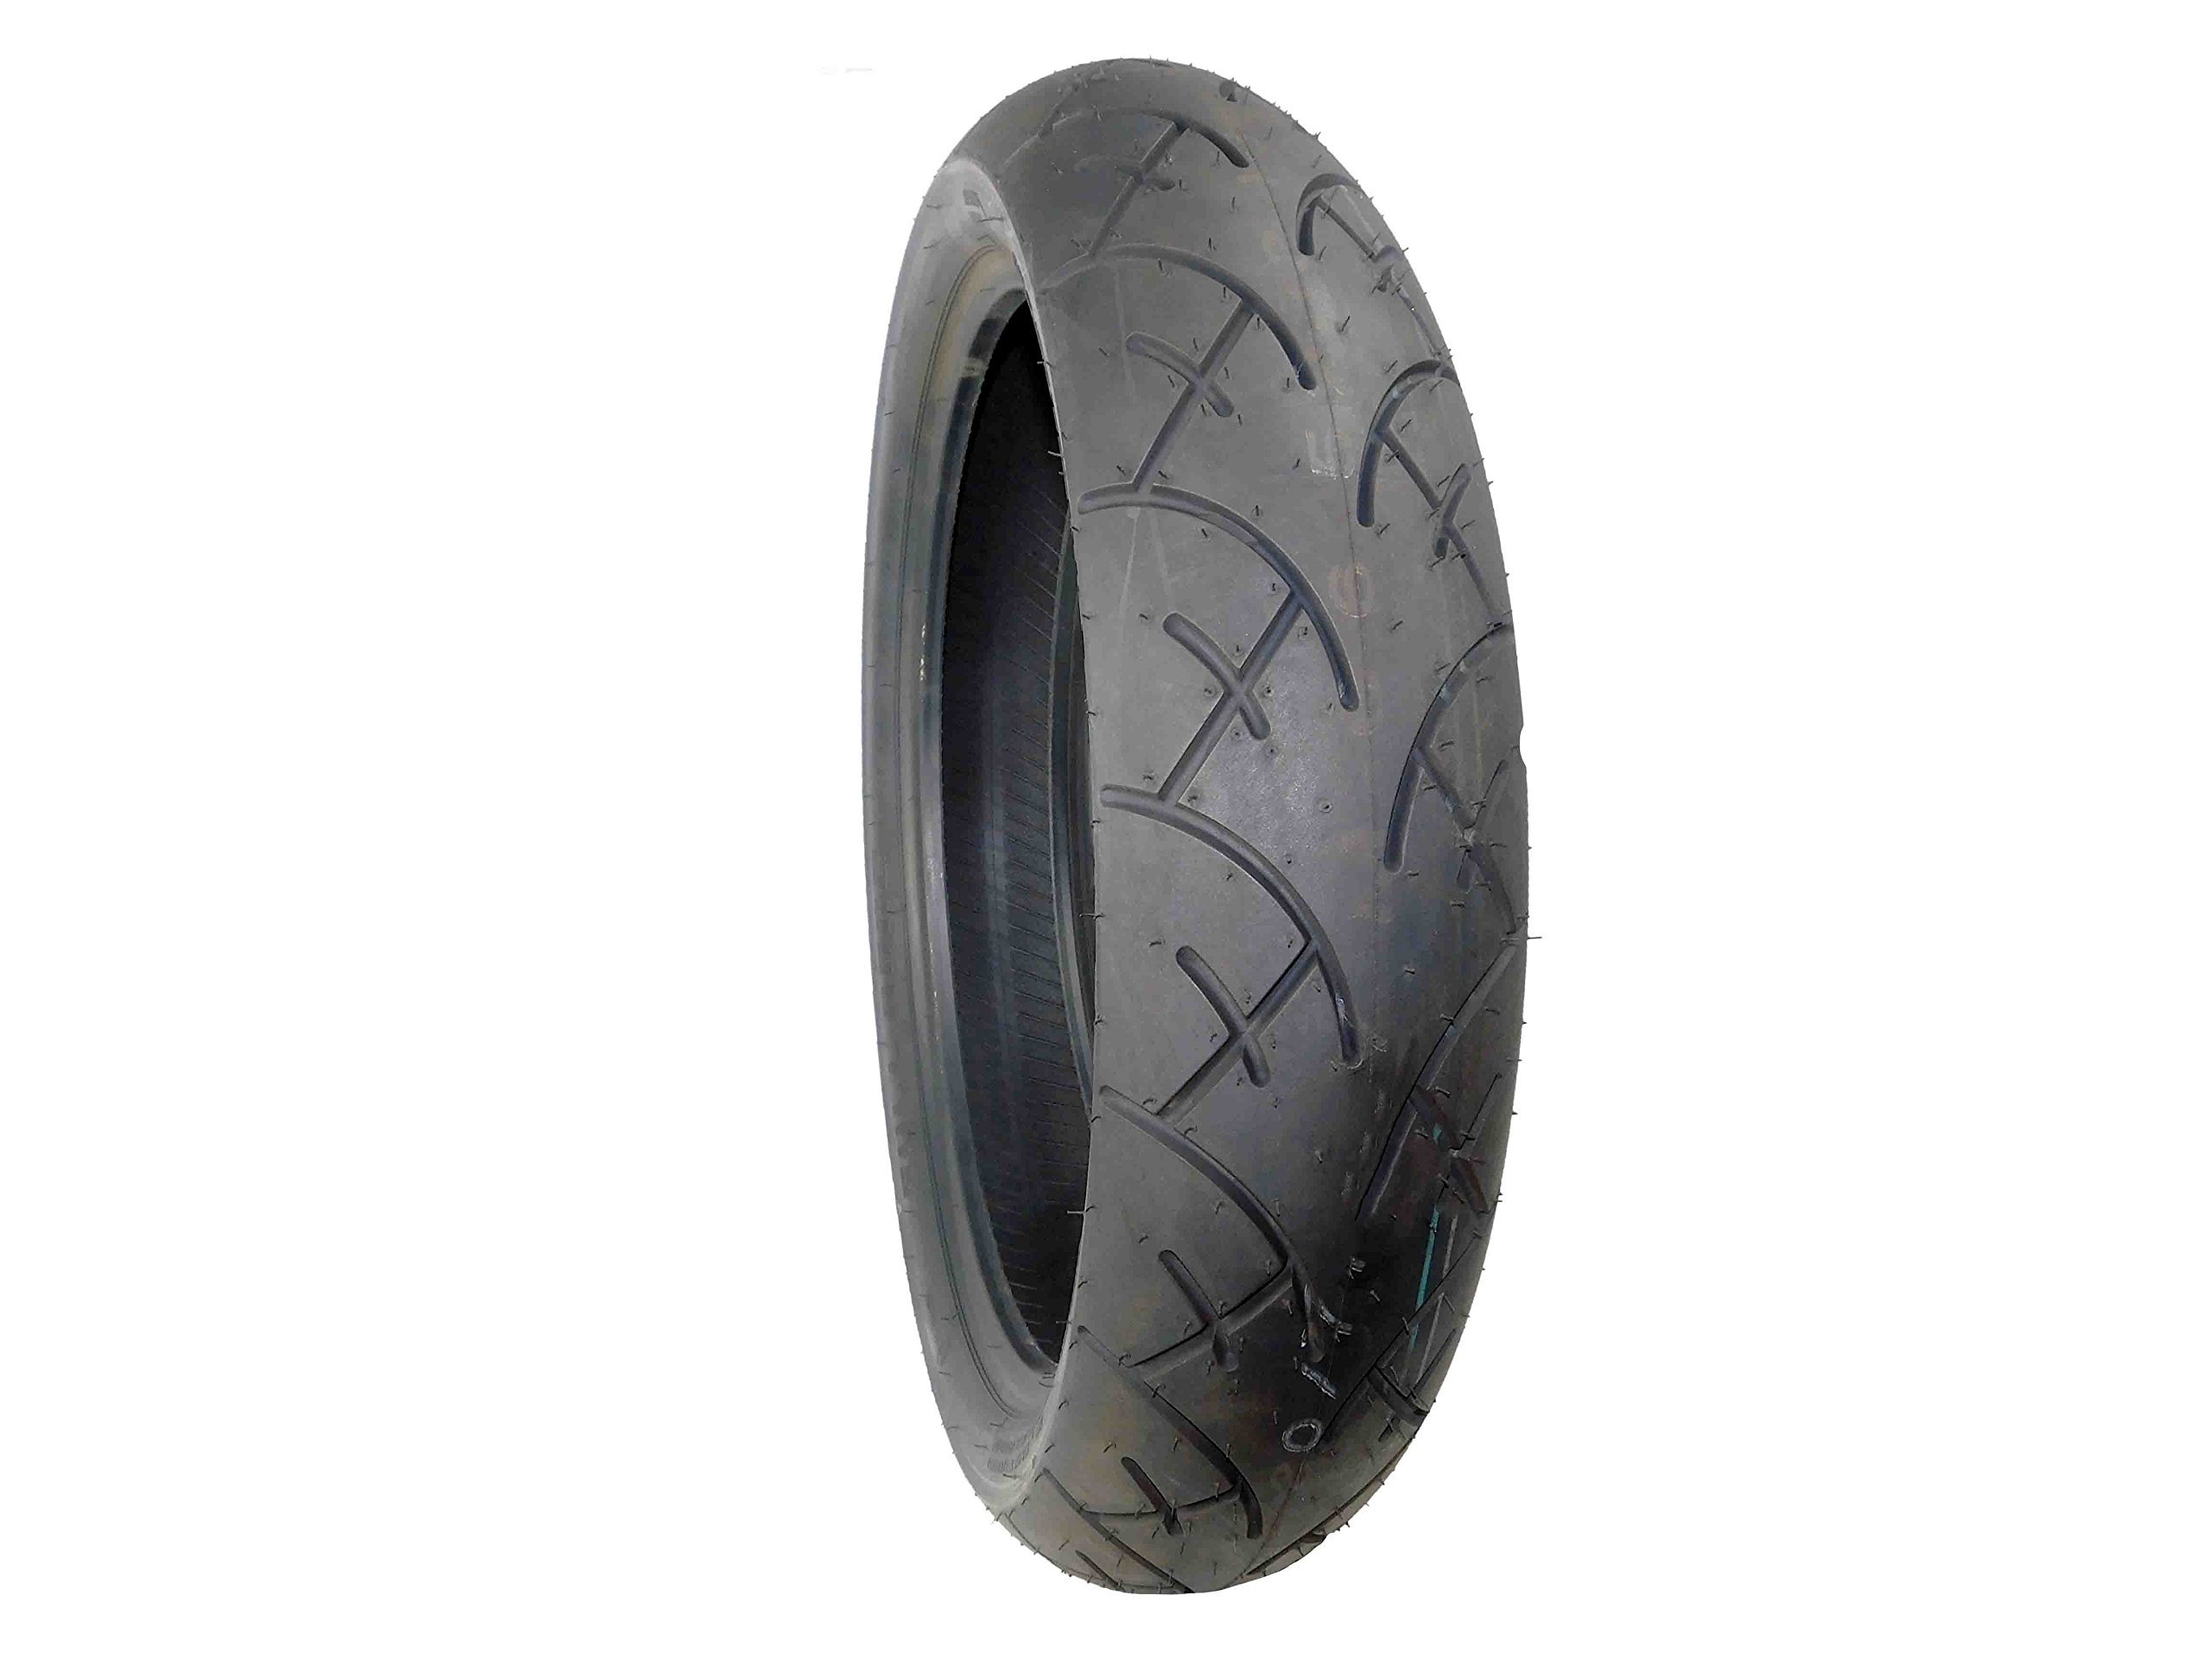 Full Bore M-66 Tour King Cruiser Motorcycle Tire (130/70-17)